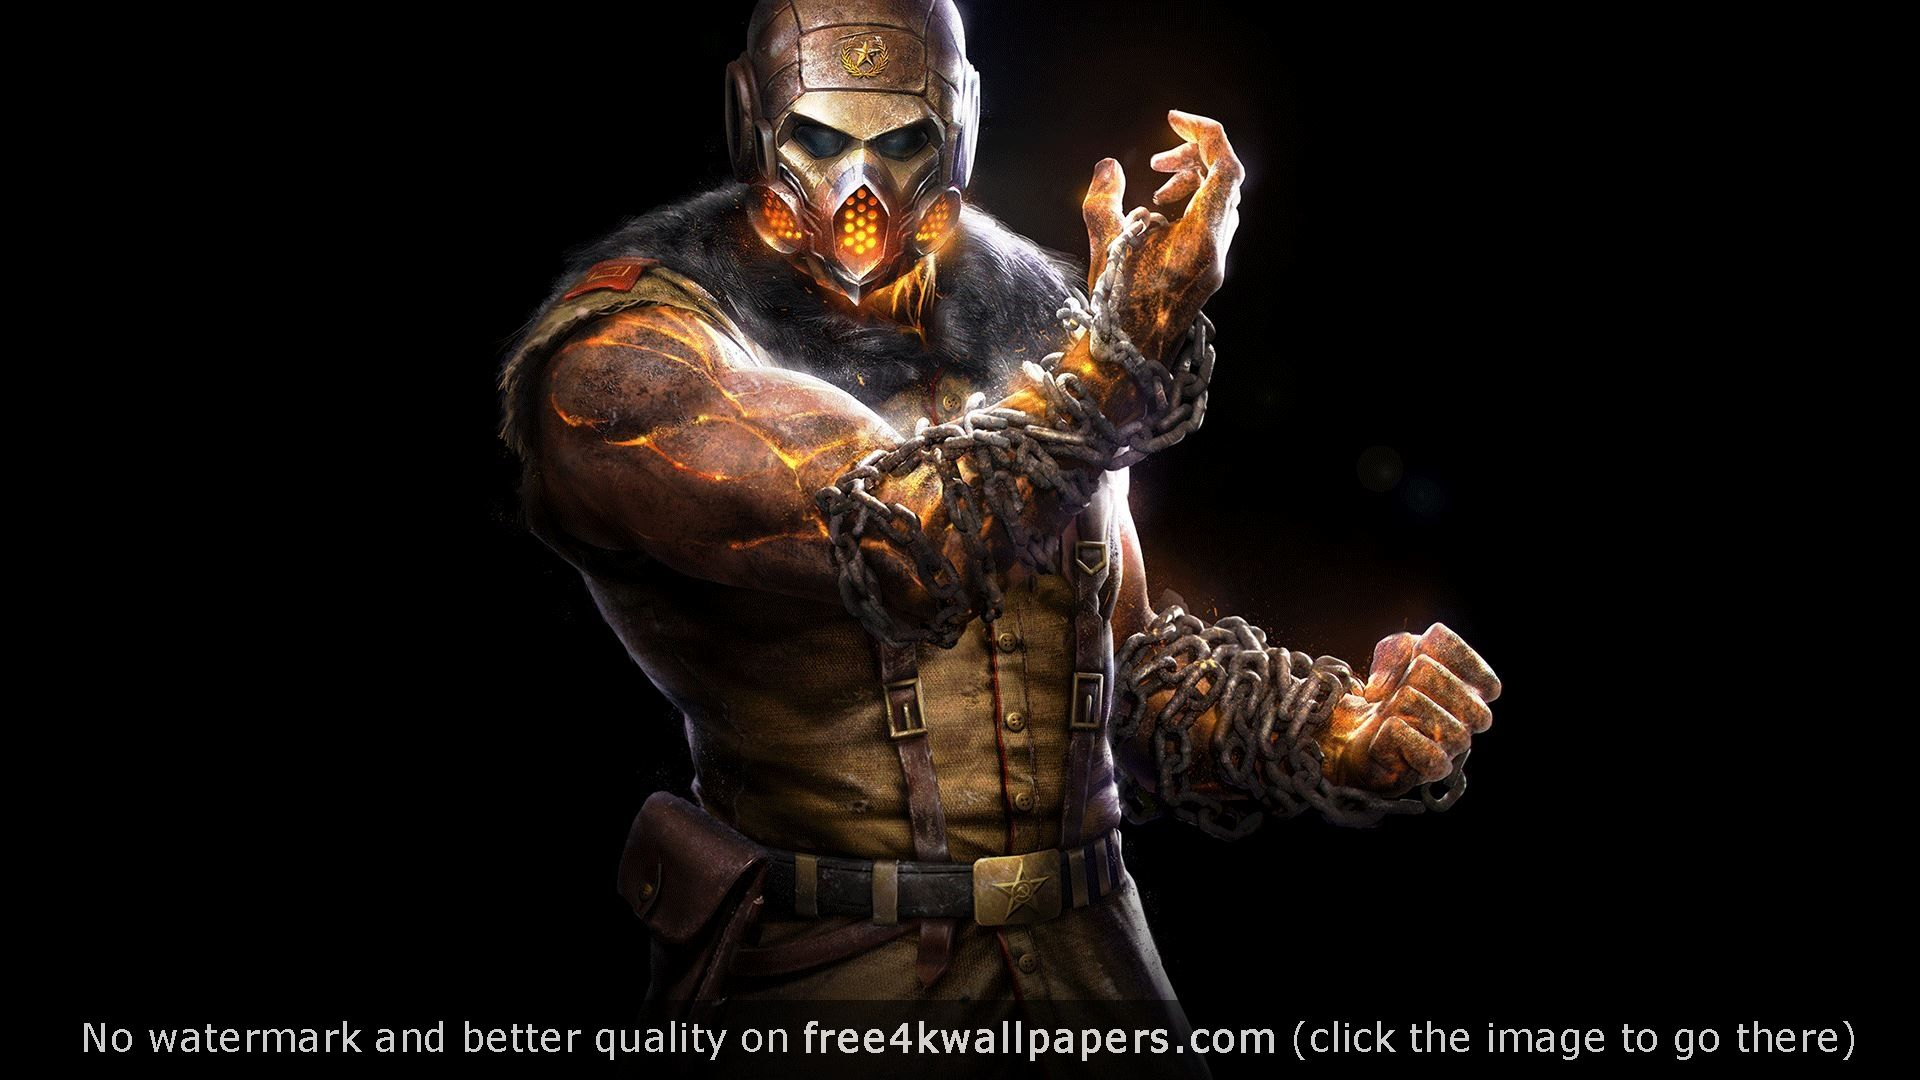 Mortal Kombat X Kold War Scorpion Wallpaper Mortal Kombat X